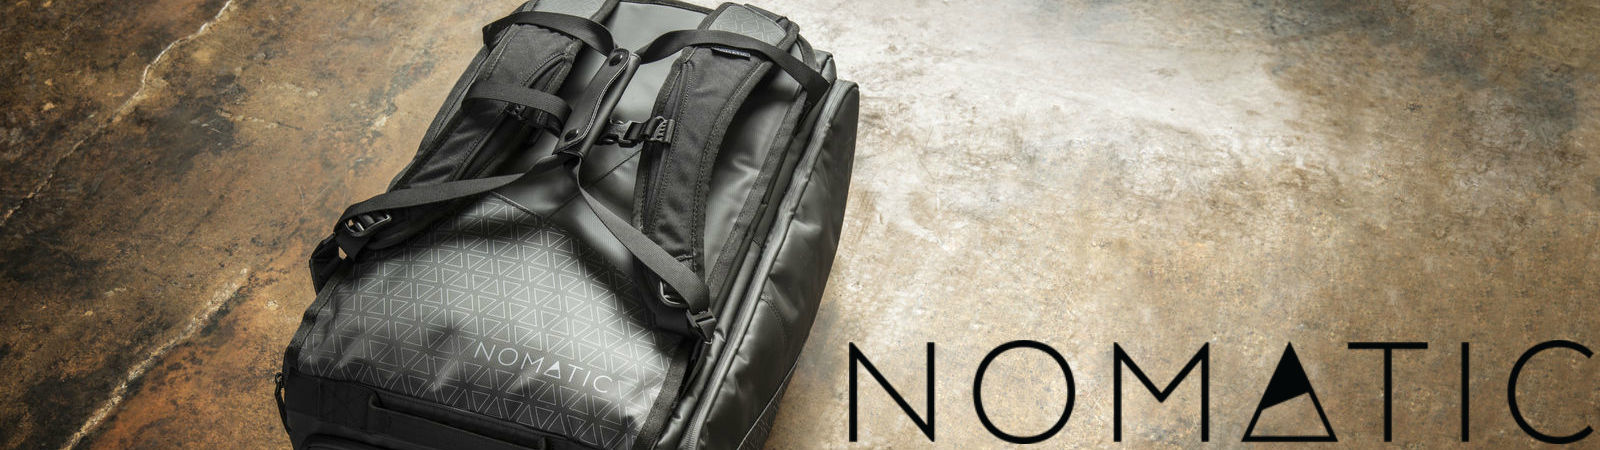 The Nomatic Travel Bag in Black available at Sportique.com.